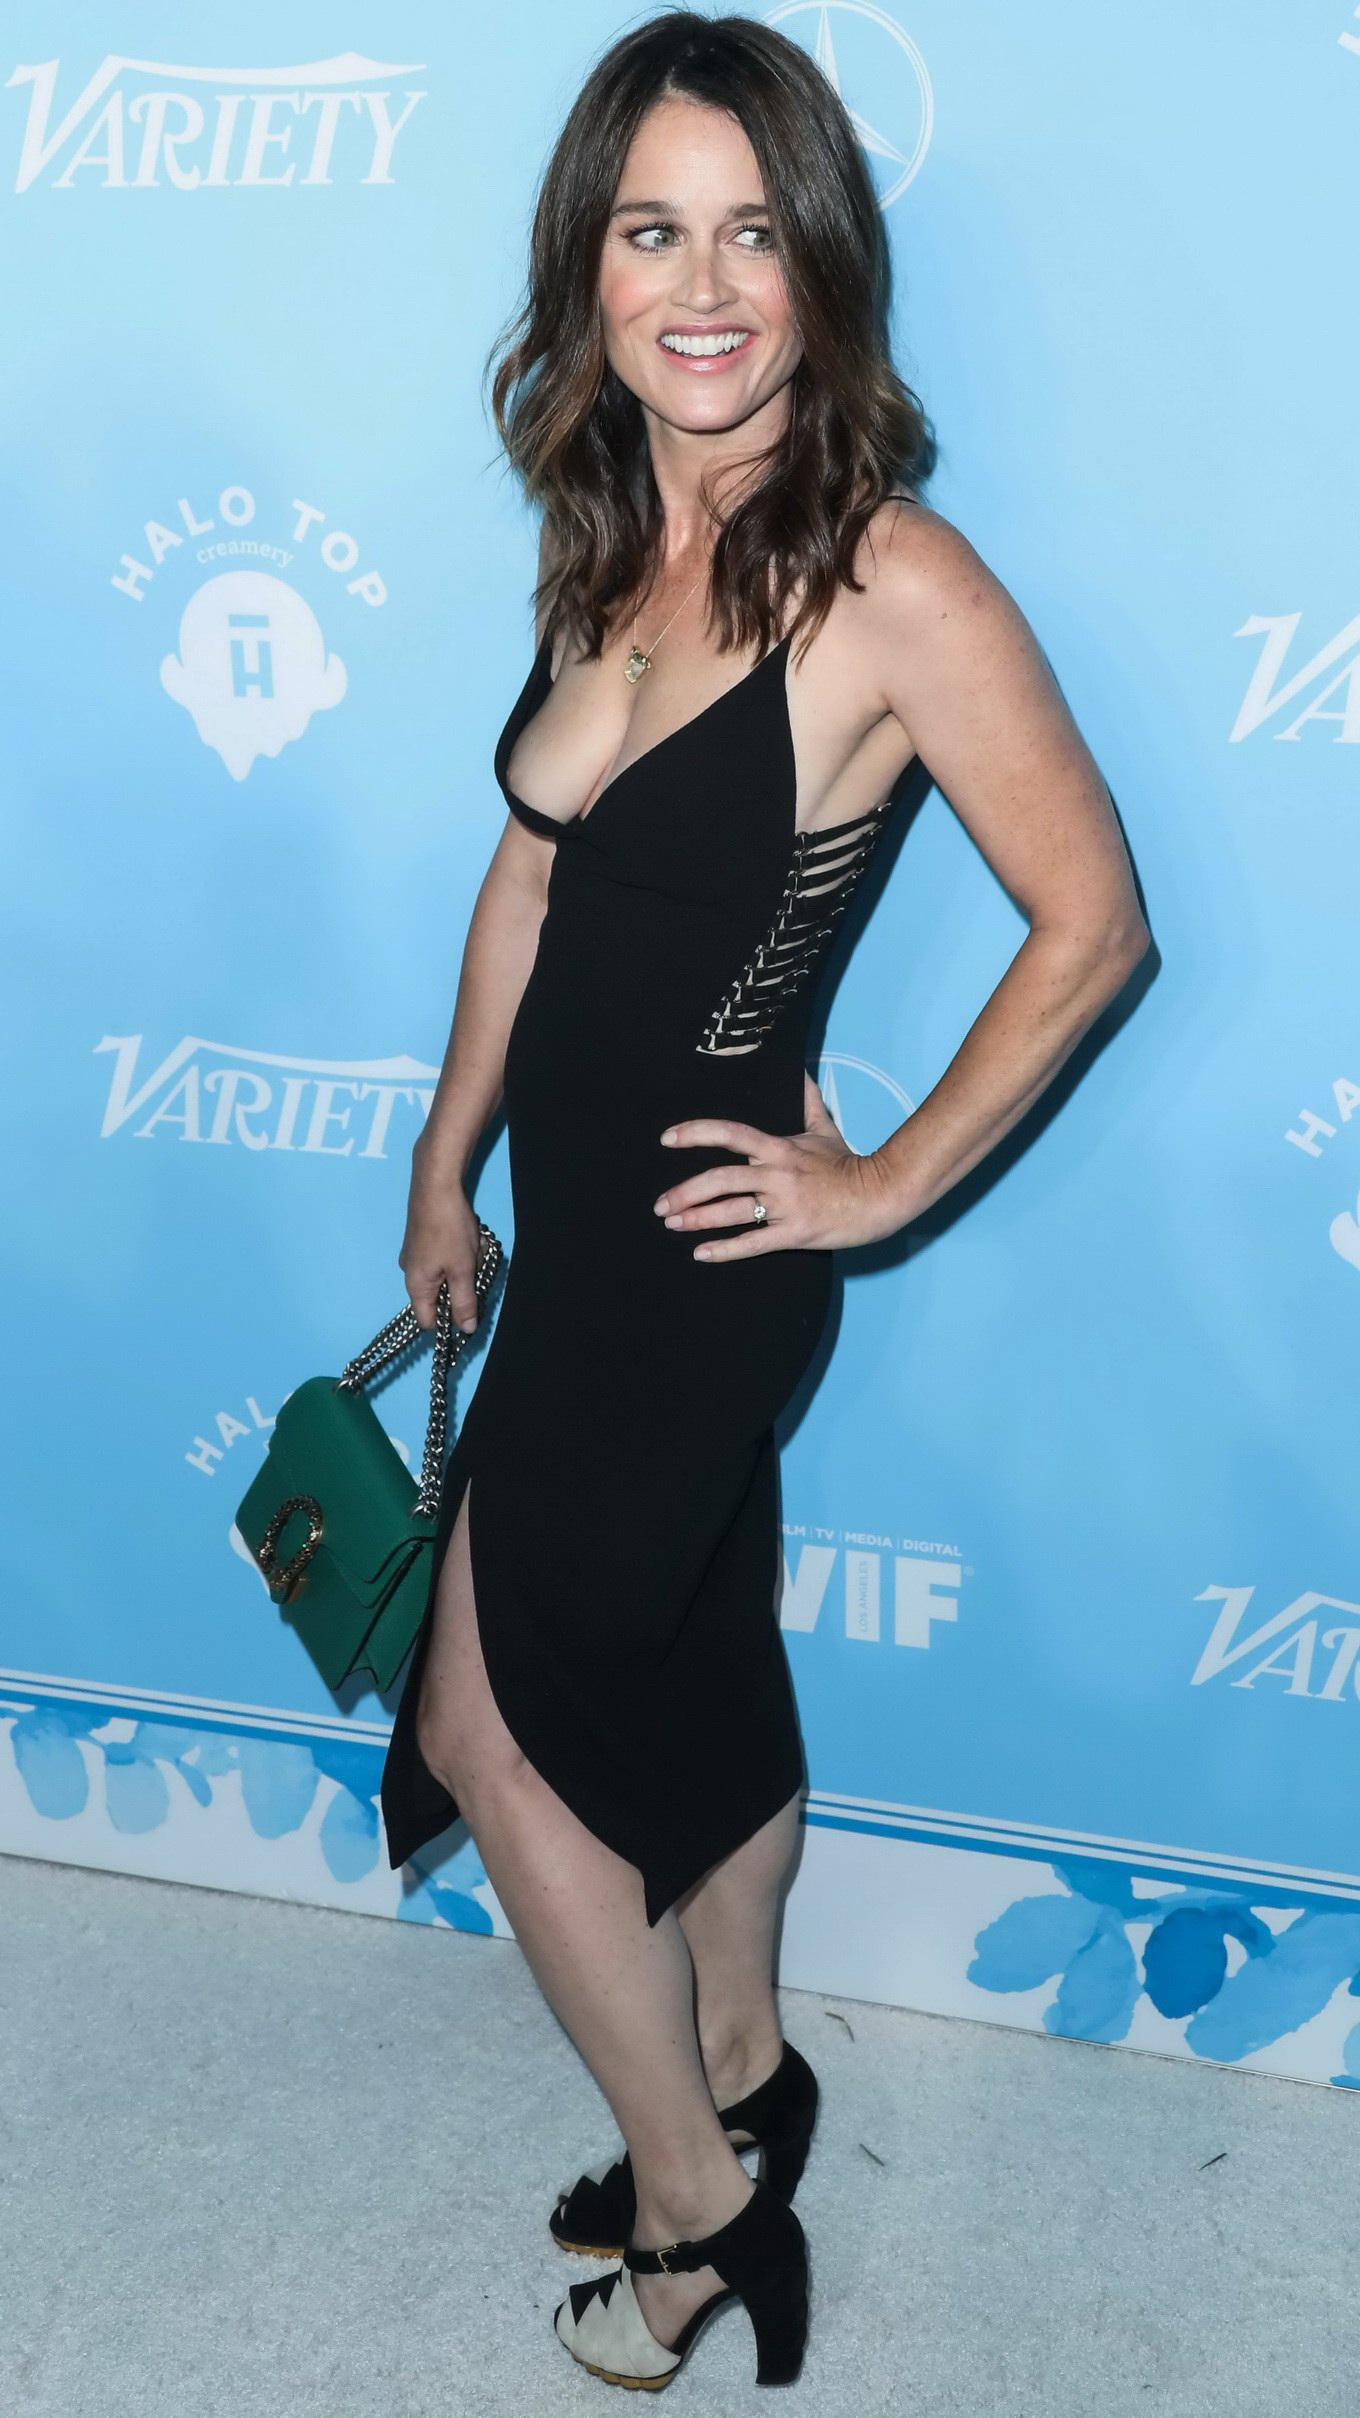 robin tunney hot and naked